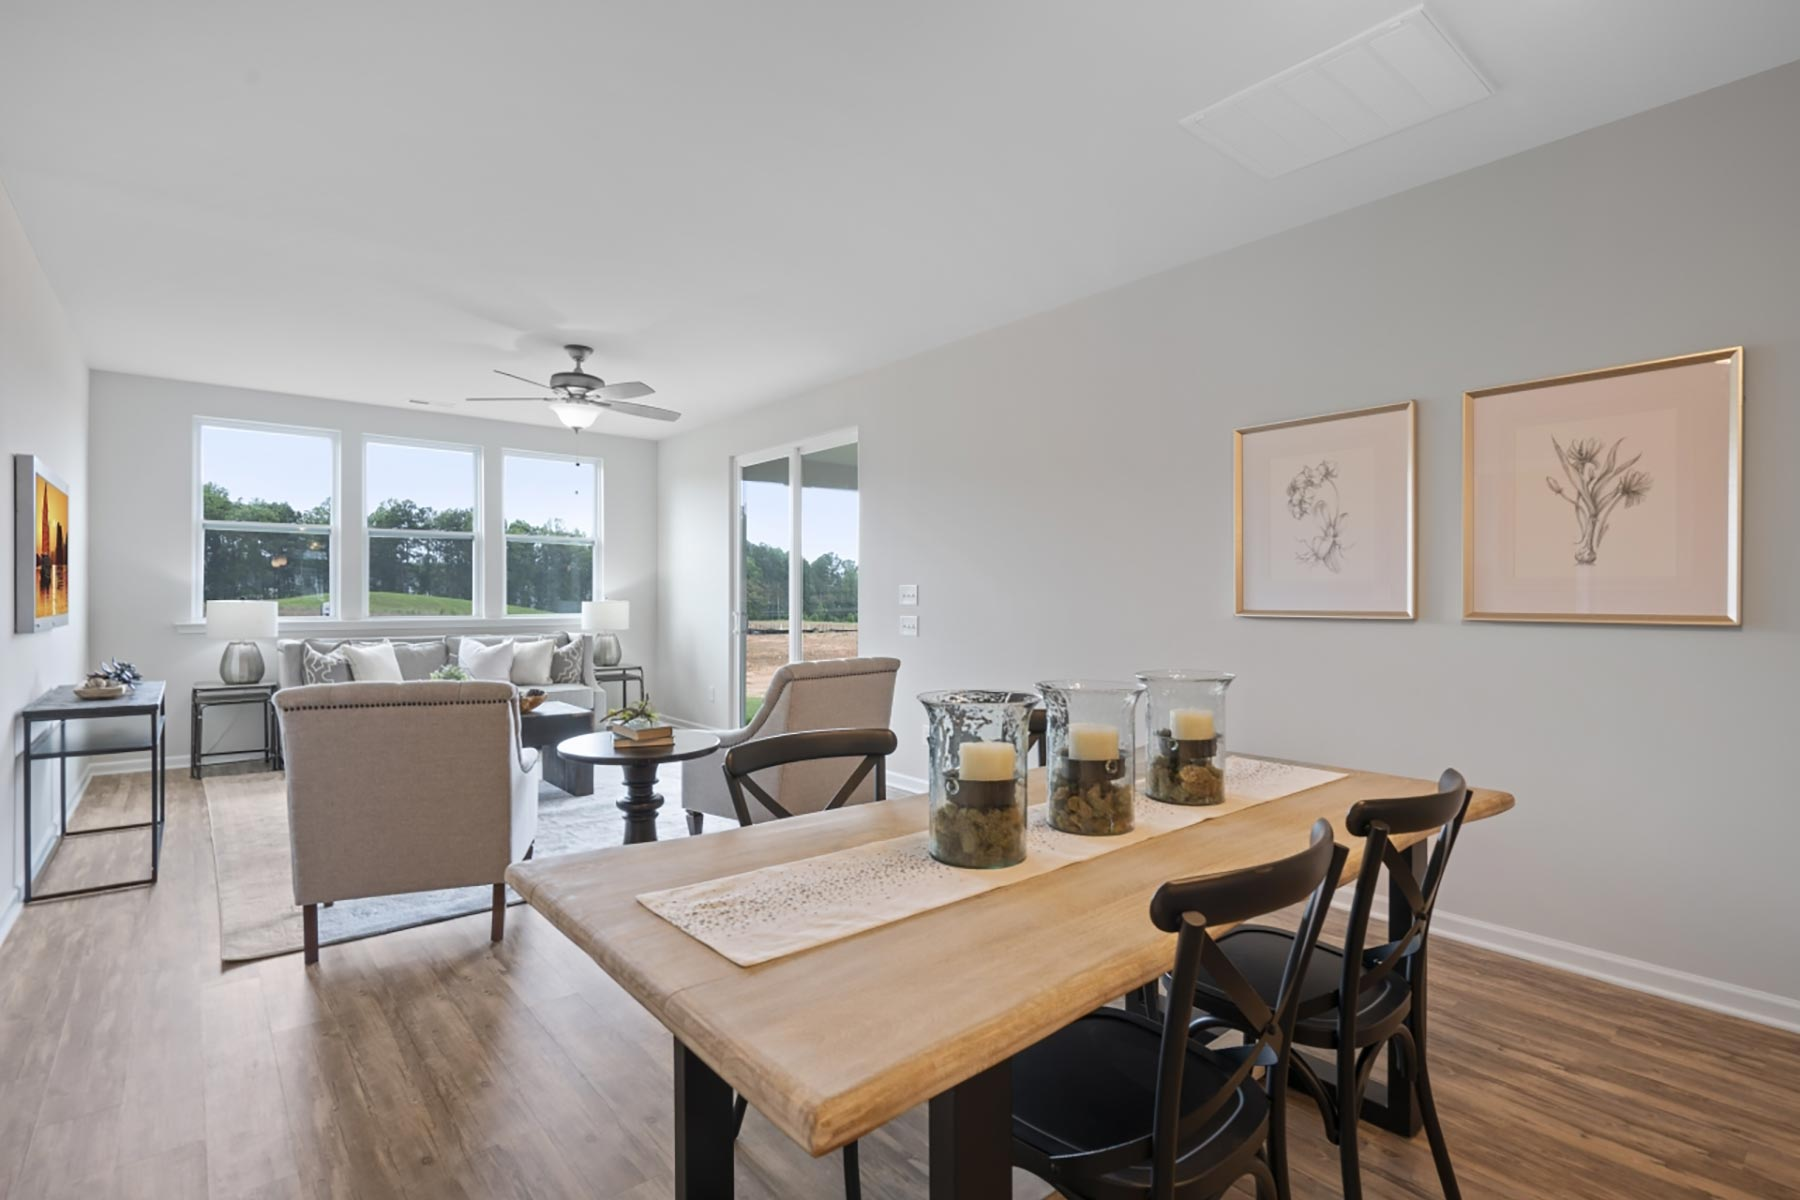 Evelyn Plan Breakfast at Bedford at Flowers Plantation in Clayton North Carolina by Mattamy Homes